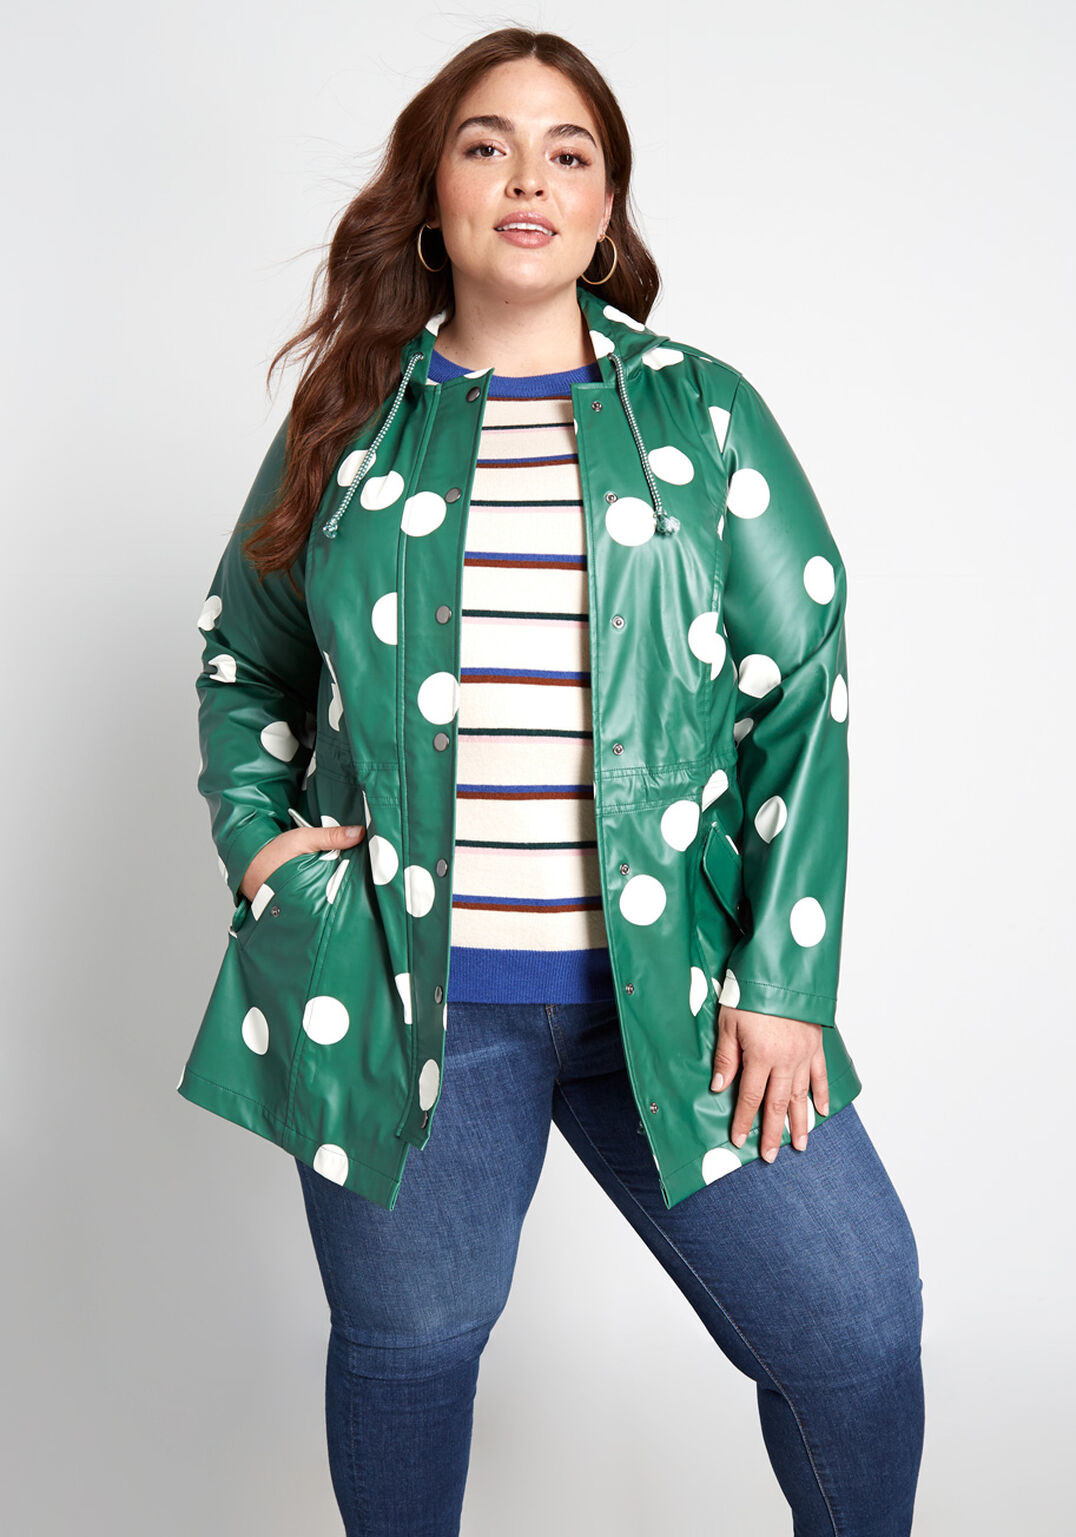 Model wearing green rain coat with large white polkadots throughout